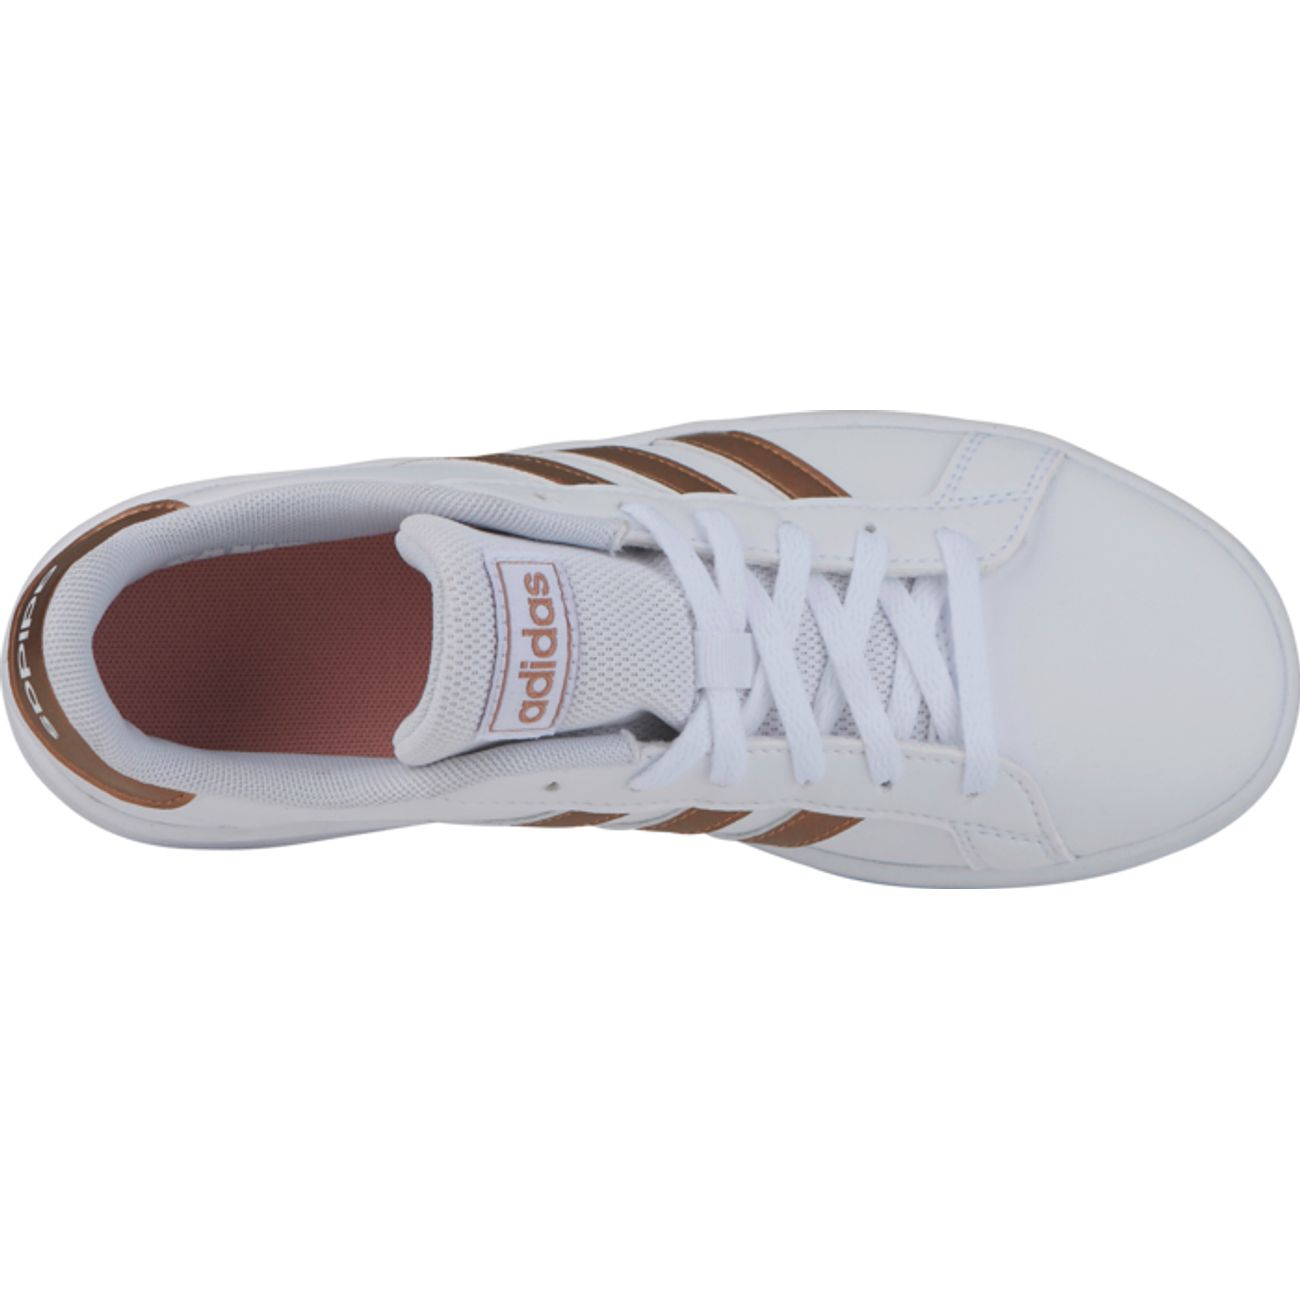 CHAUSSURES BASSES Tennis enfant ADIDAS GRAND COURT K, BLANC/OR